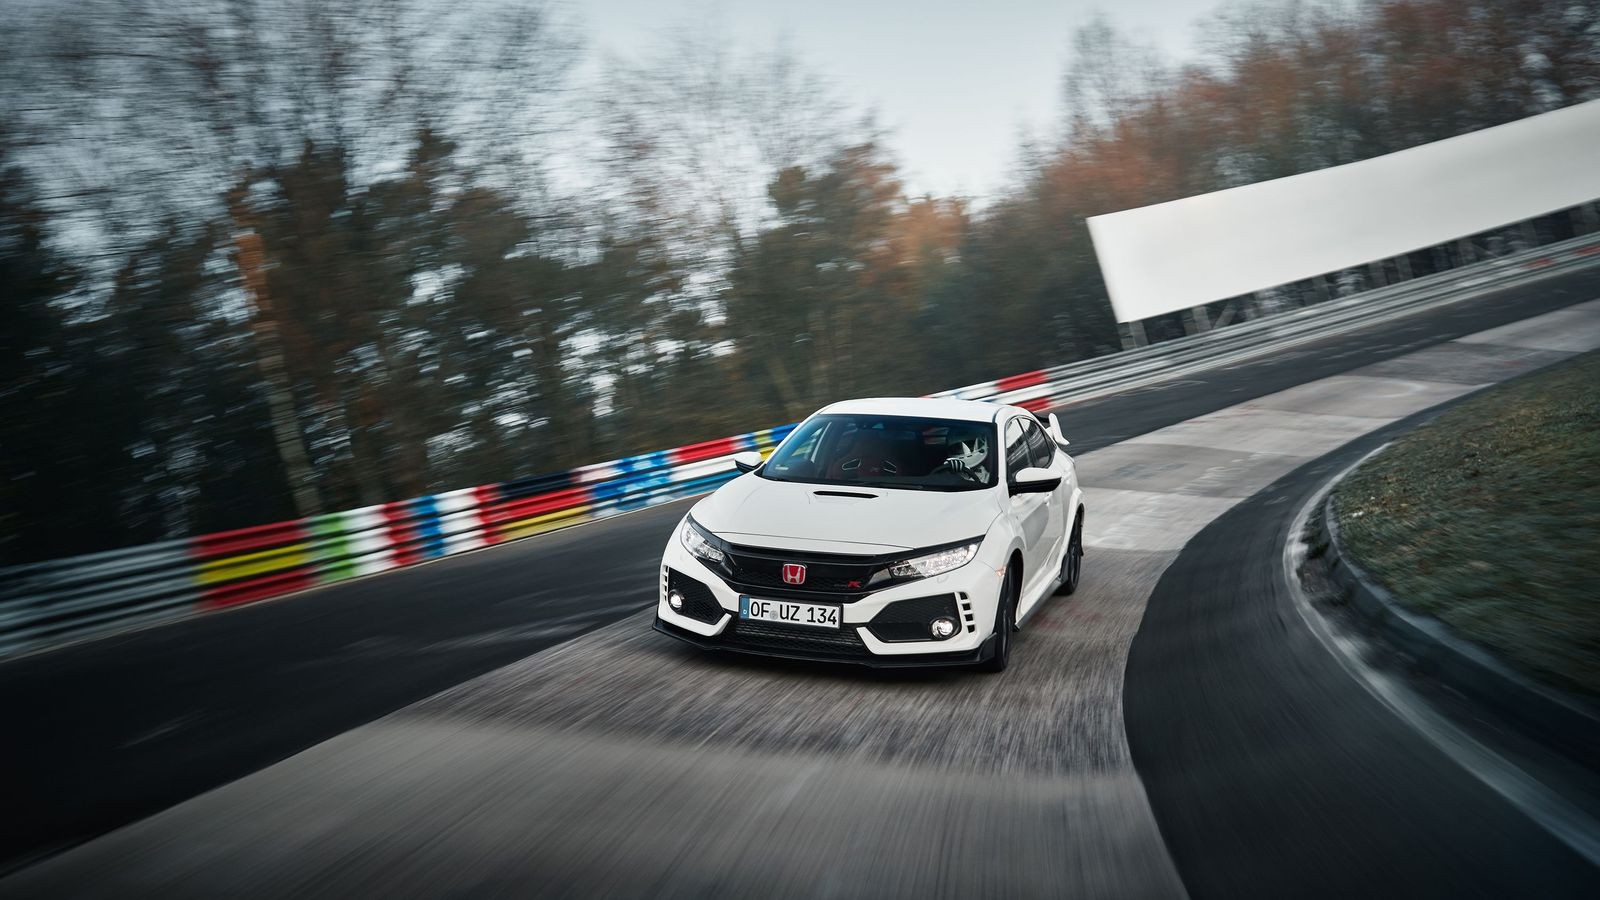 Honda Civic Type R Wallpapers Posted By Sarah Peltier